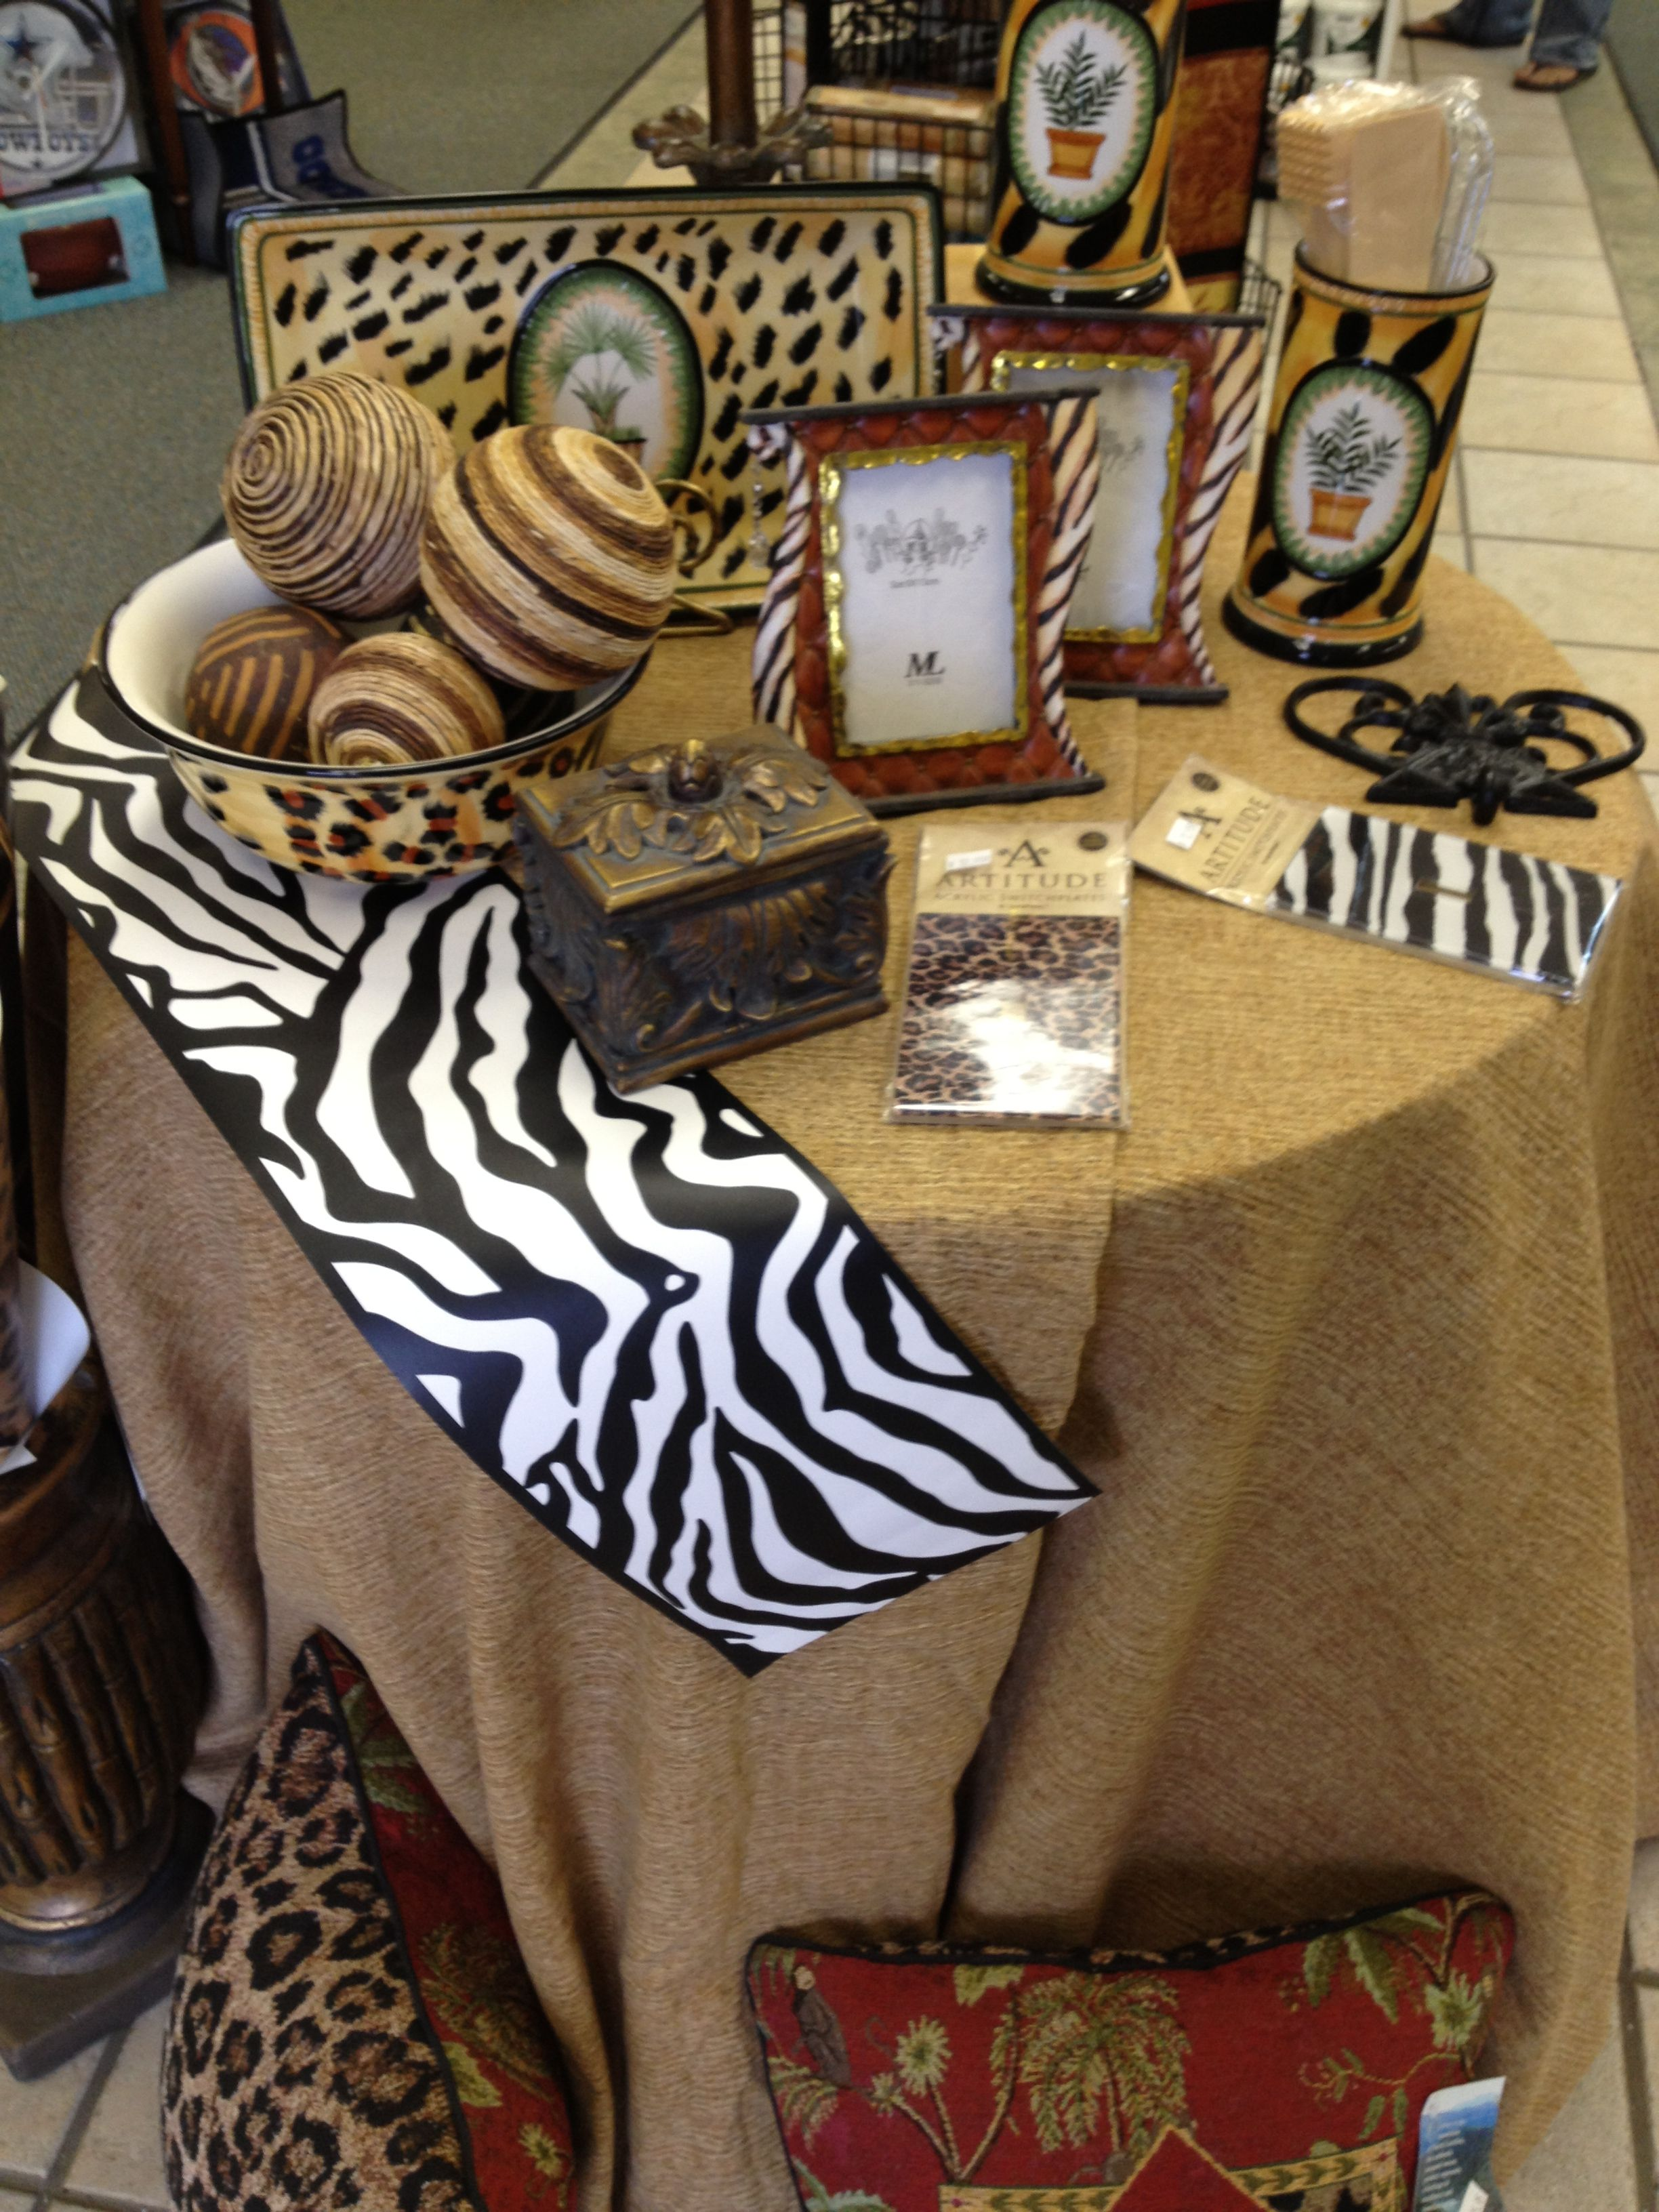 Animal print wallpapers, borders and accessories have